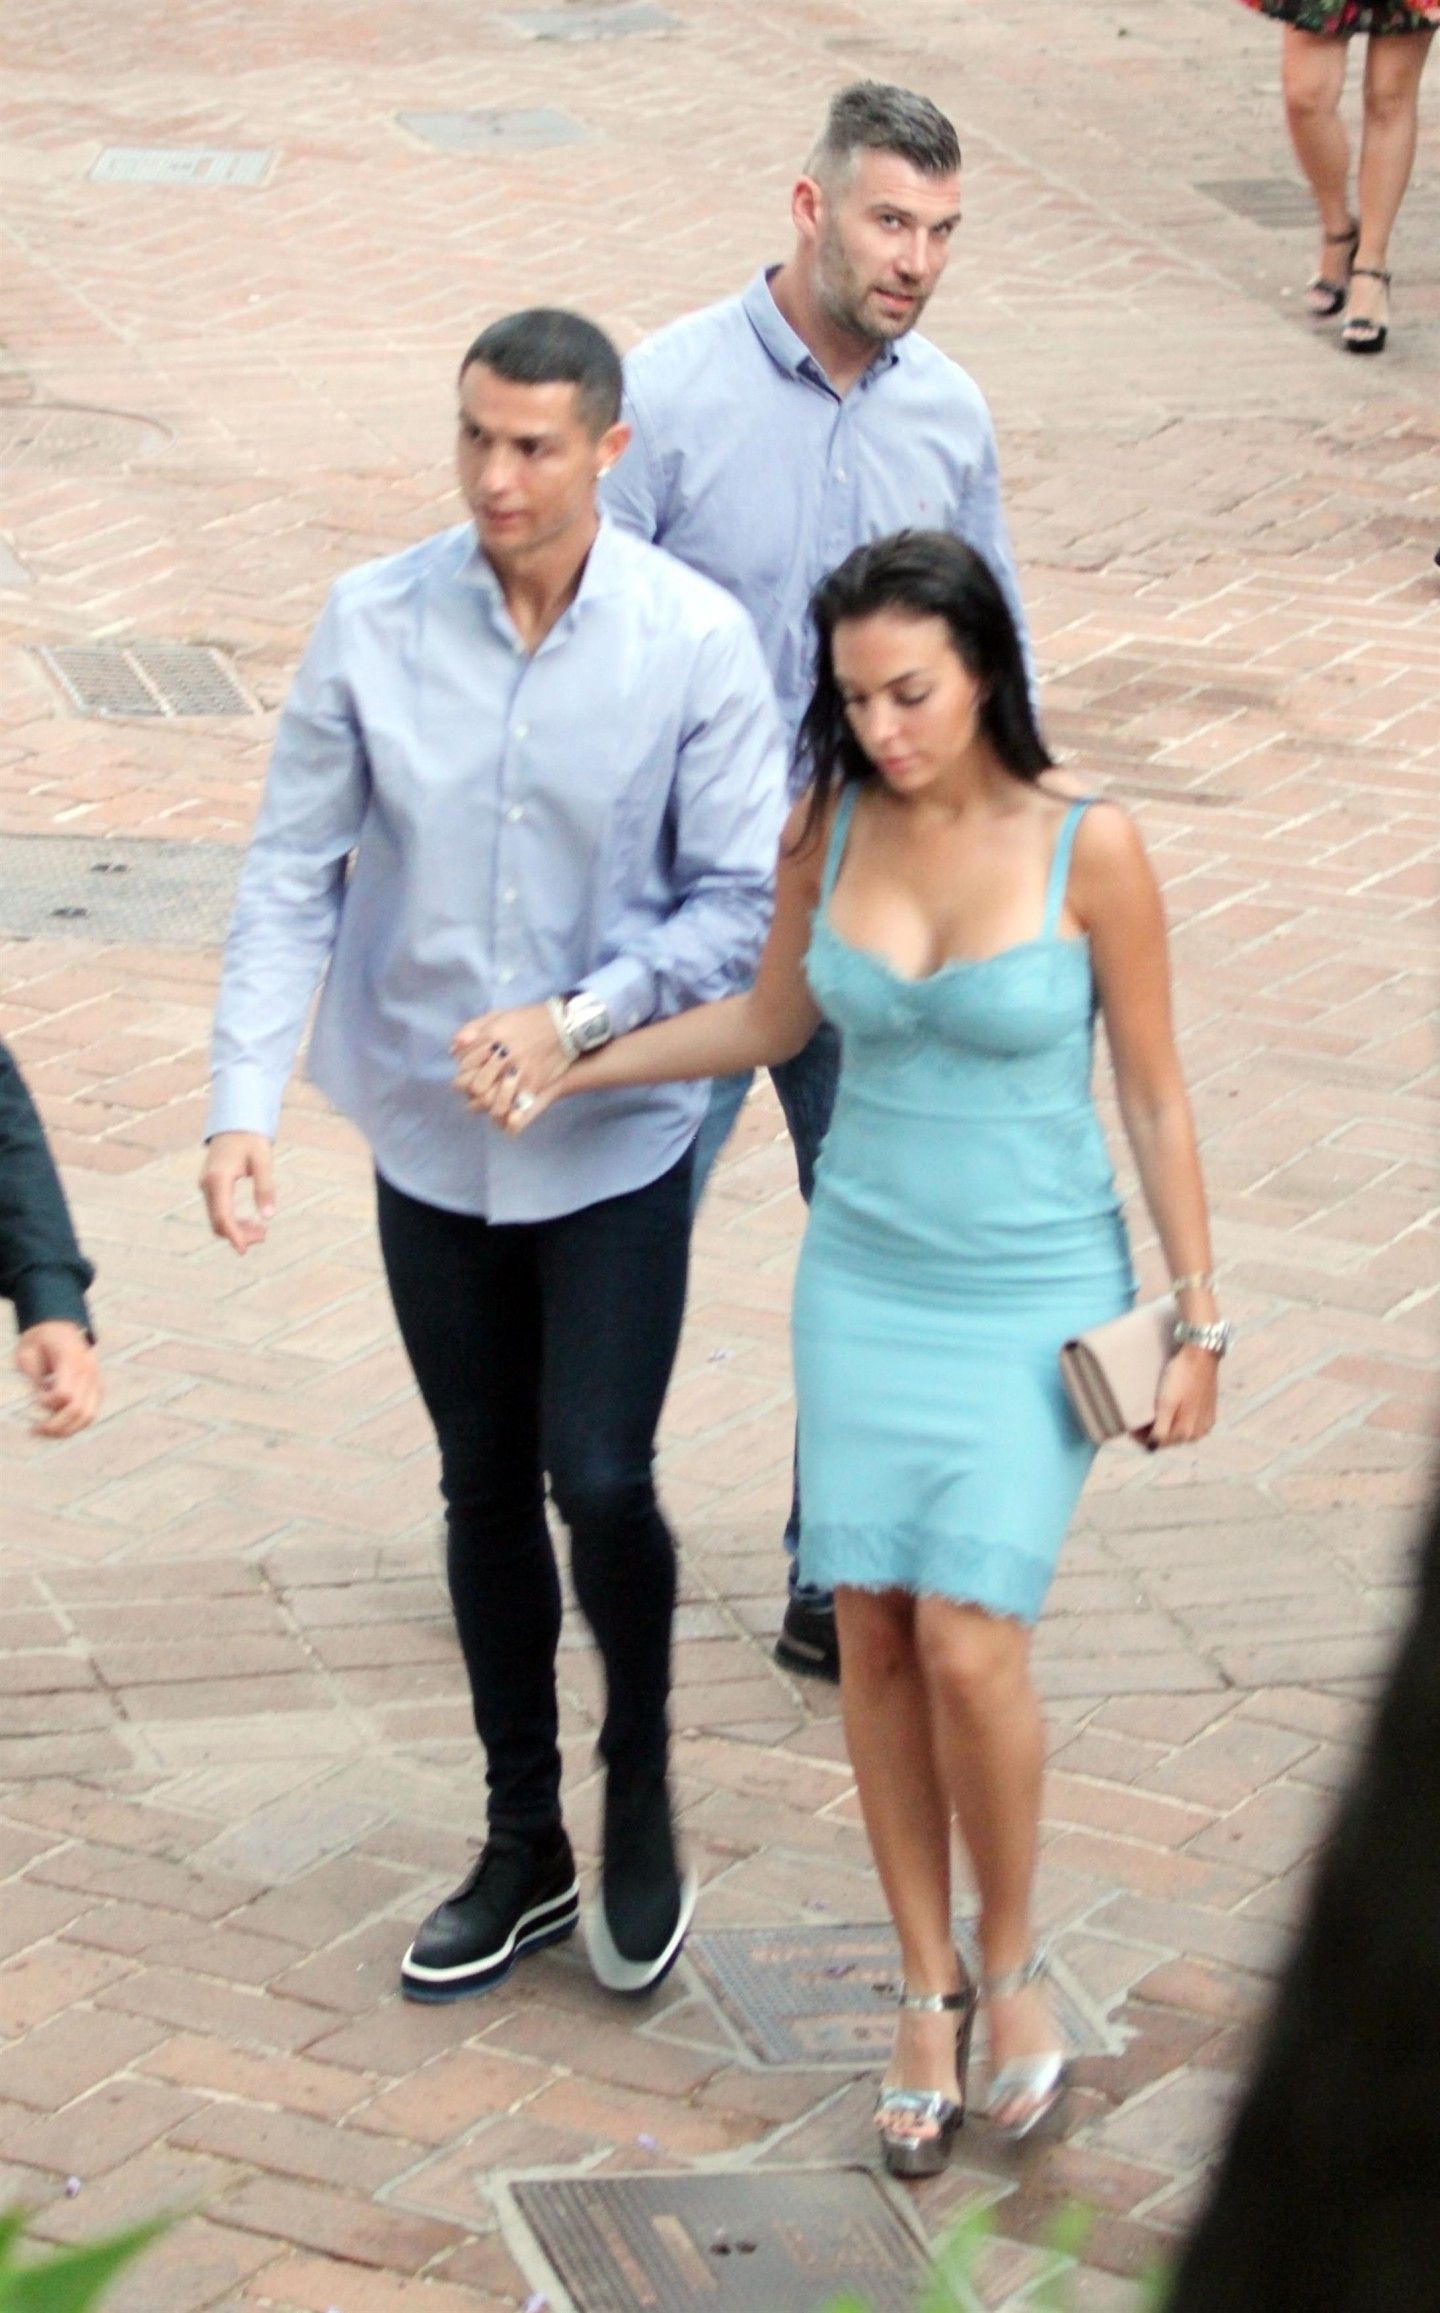 Candids Cristianoronaldo Georginarodriguez Cristiano Ronaldo Is Seen Holding Hands With His Girlfriend Georgina Rodrig Fotos De Futbol Grandes Amigos Futbol